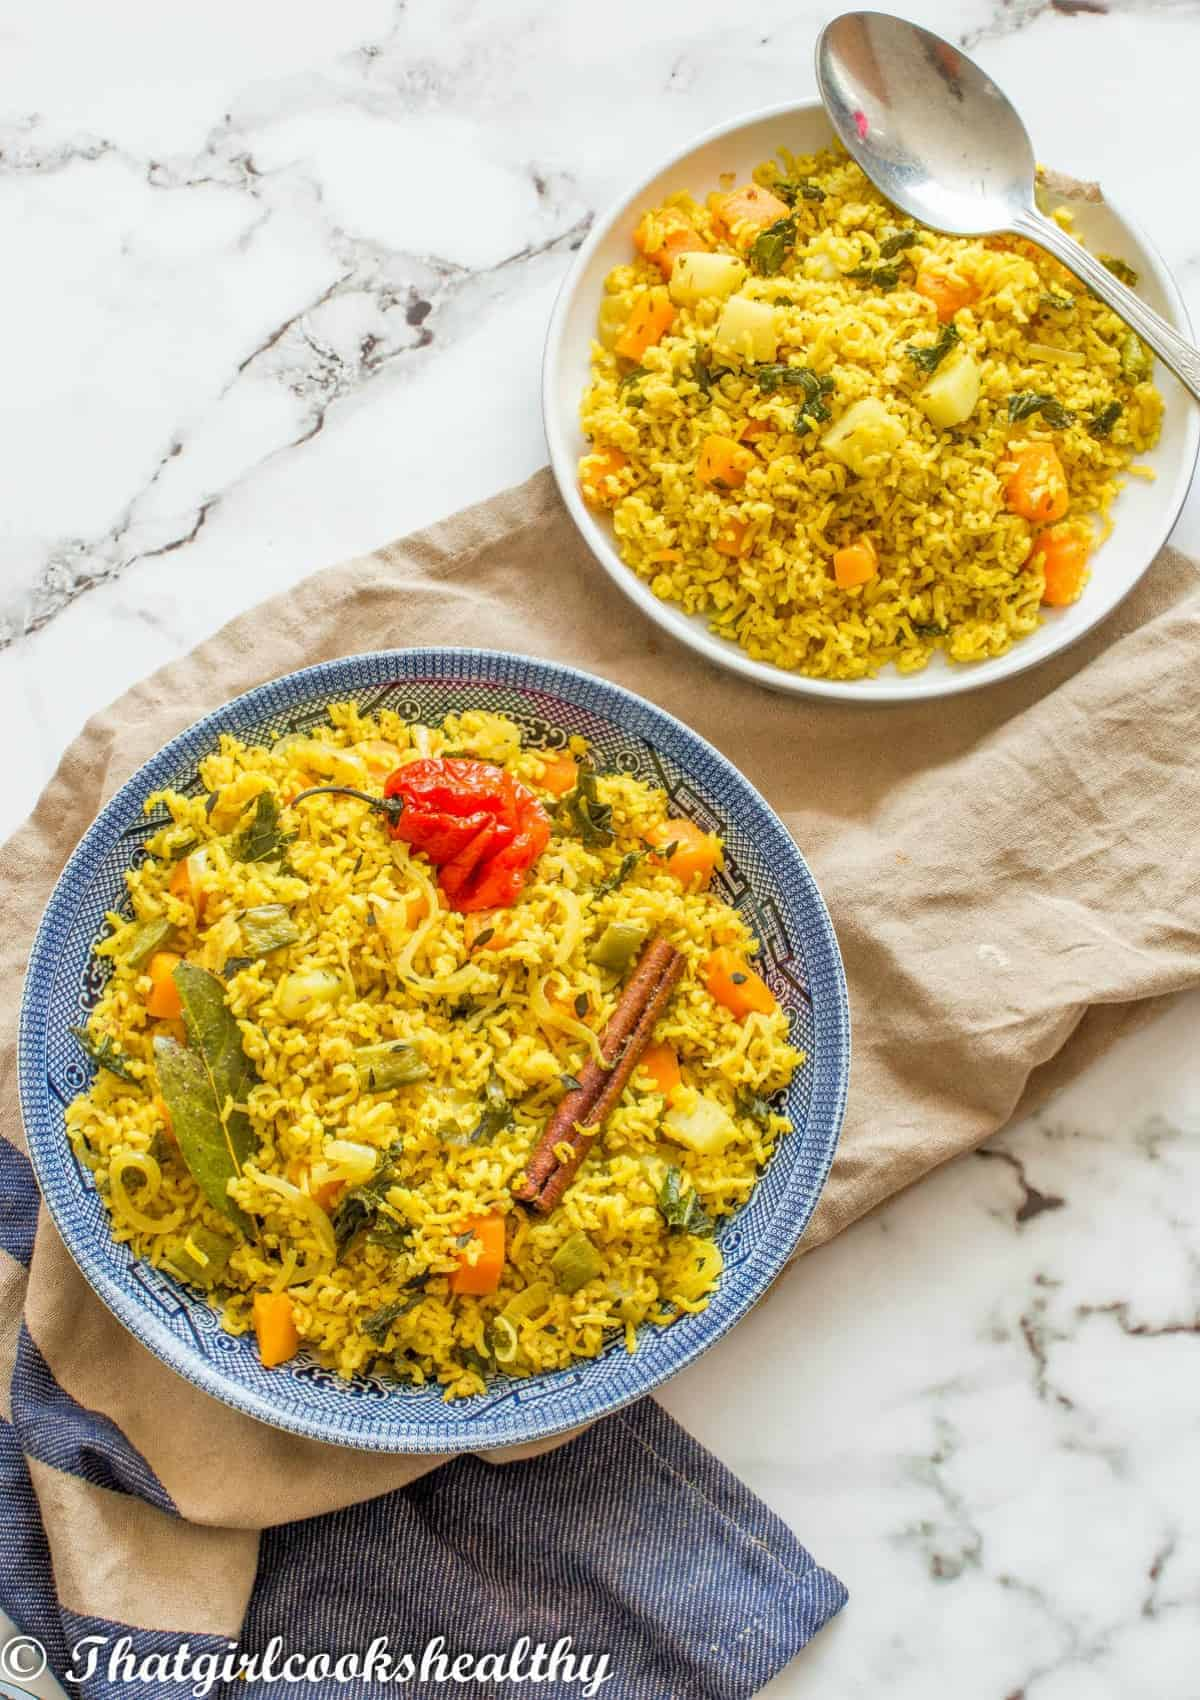 plate and a dish of yellow rice